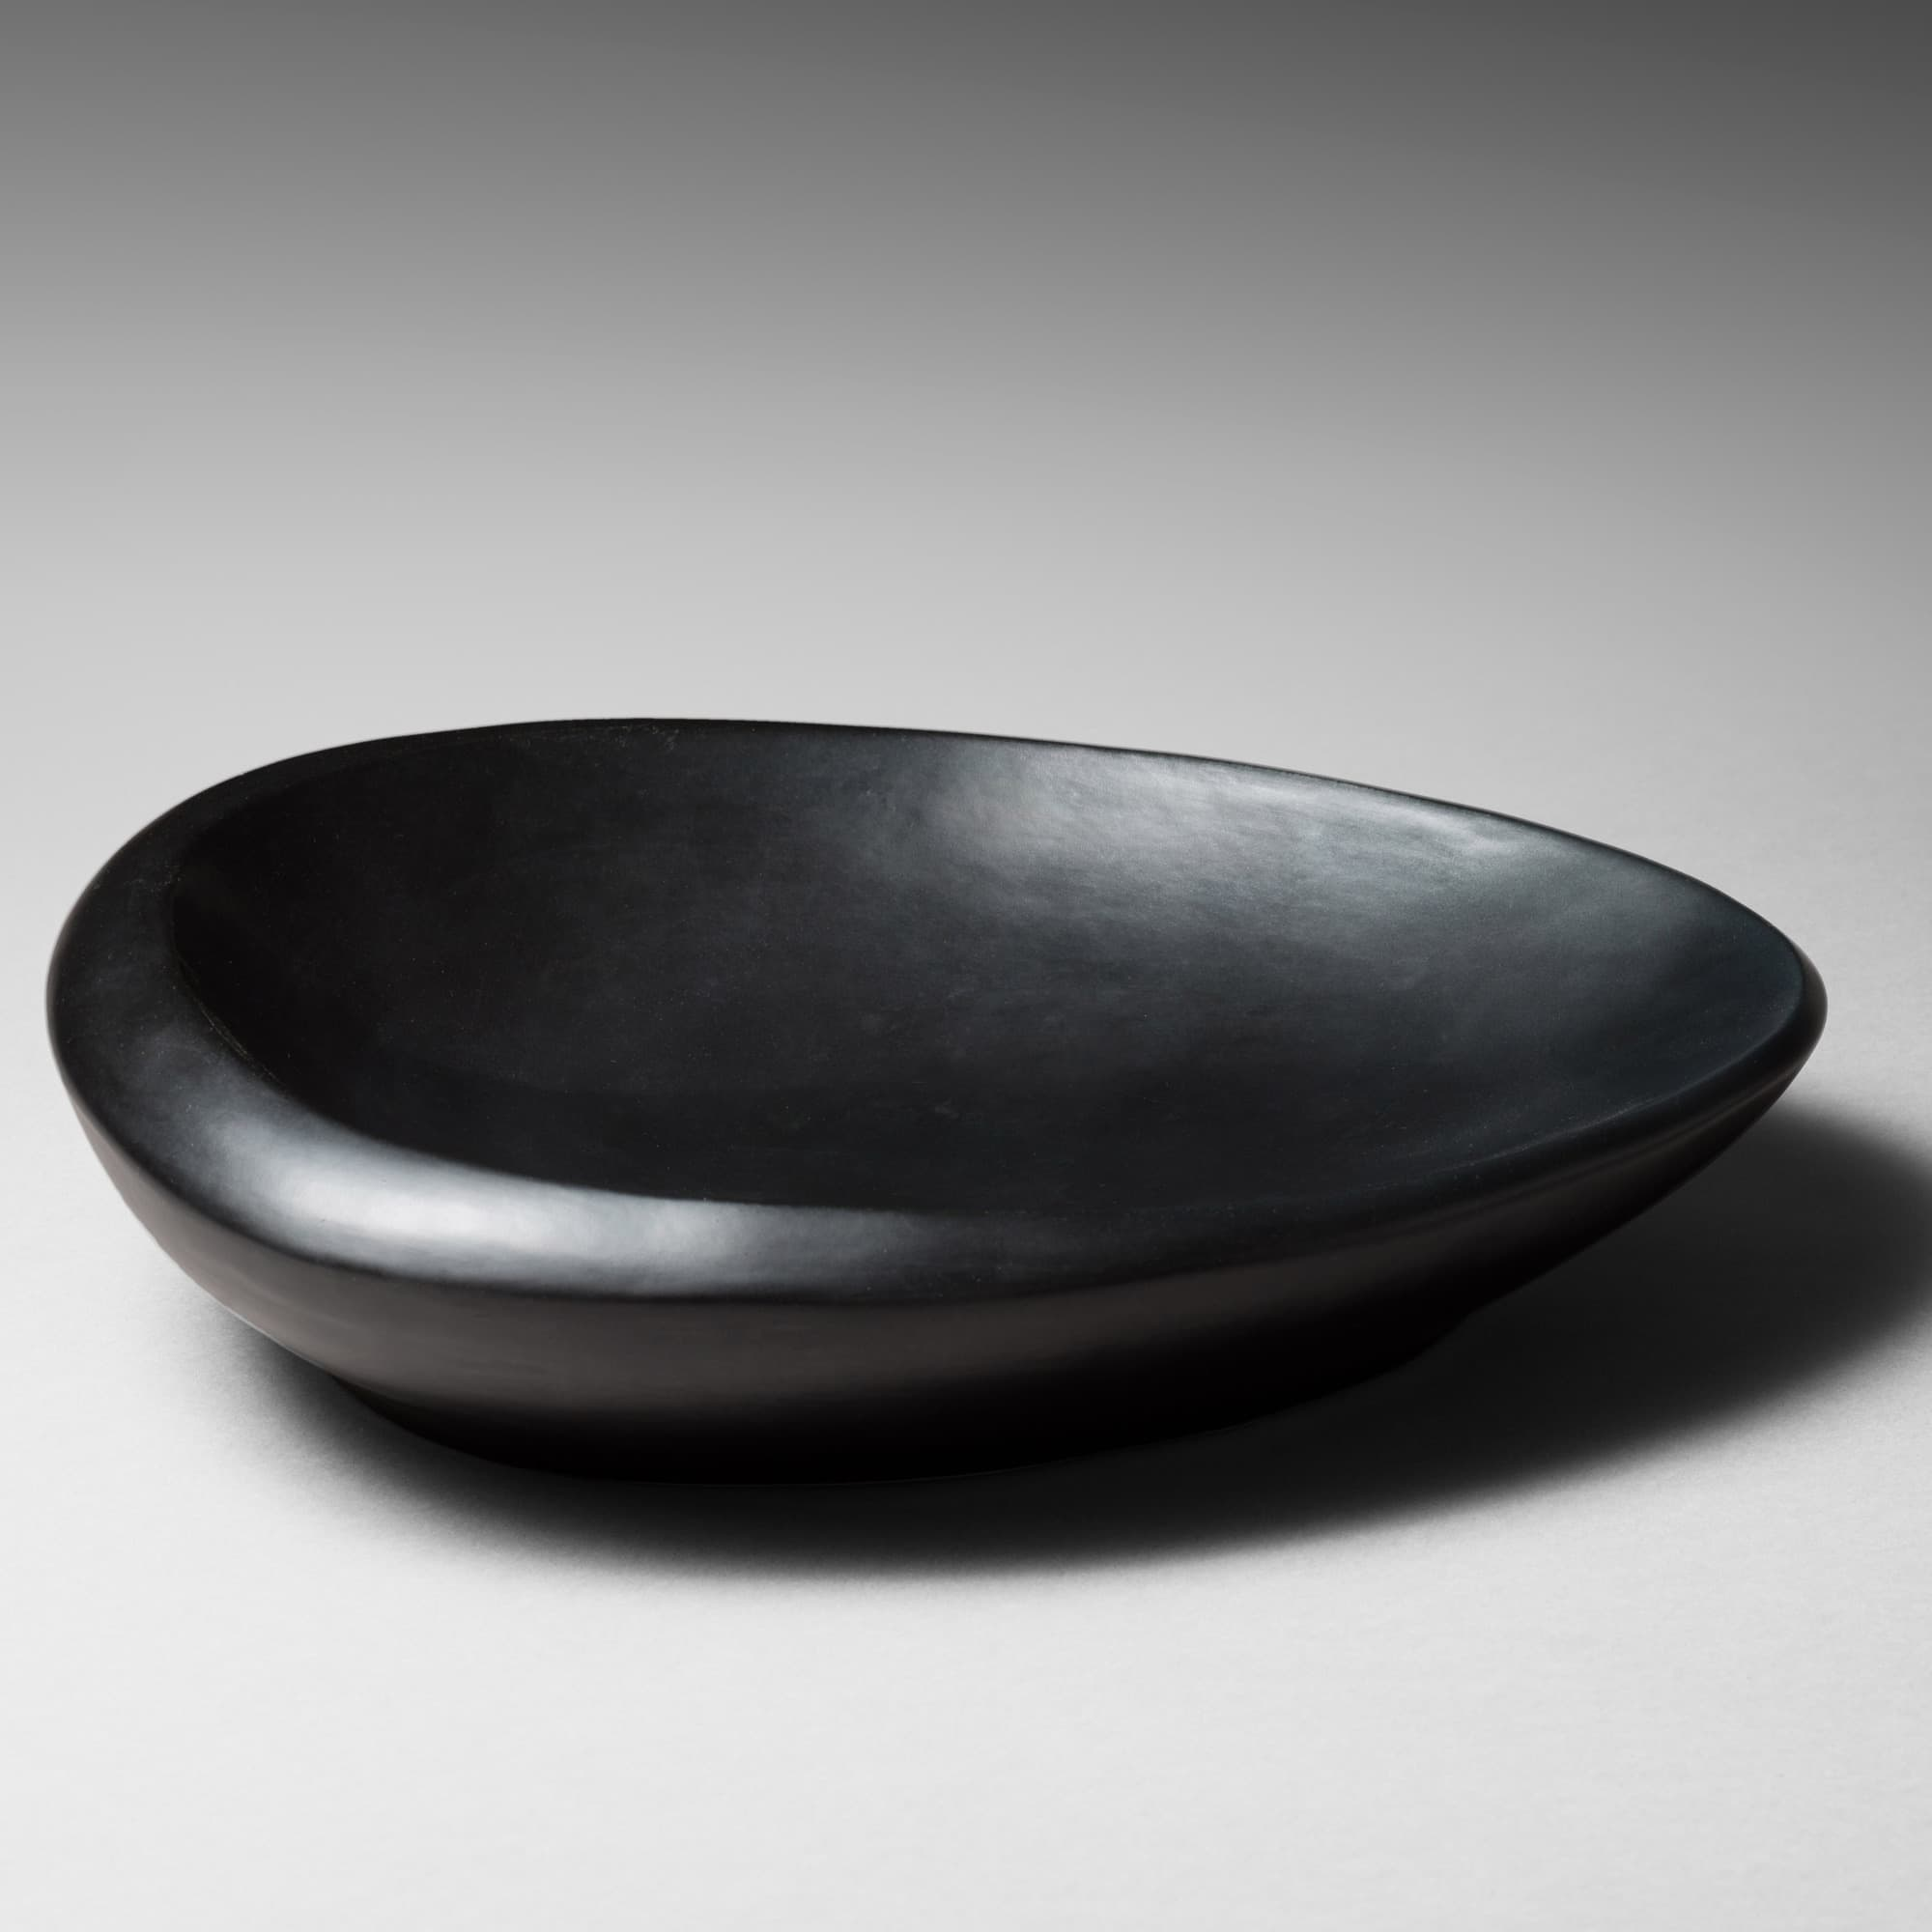 Large free-shaped bowl, vue 01